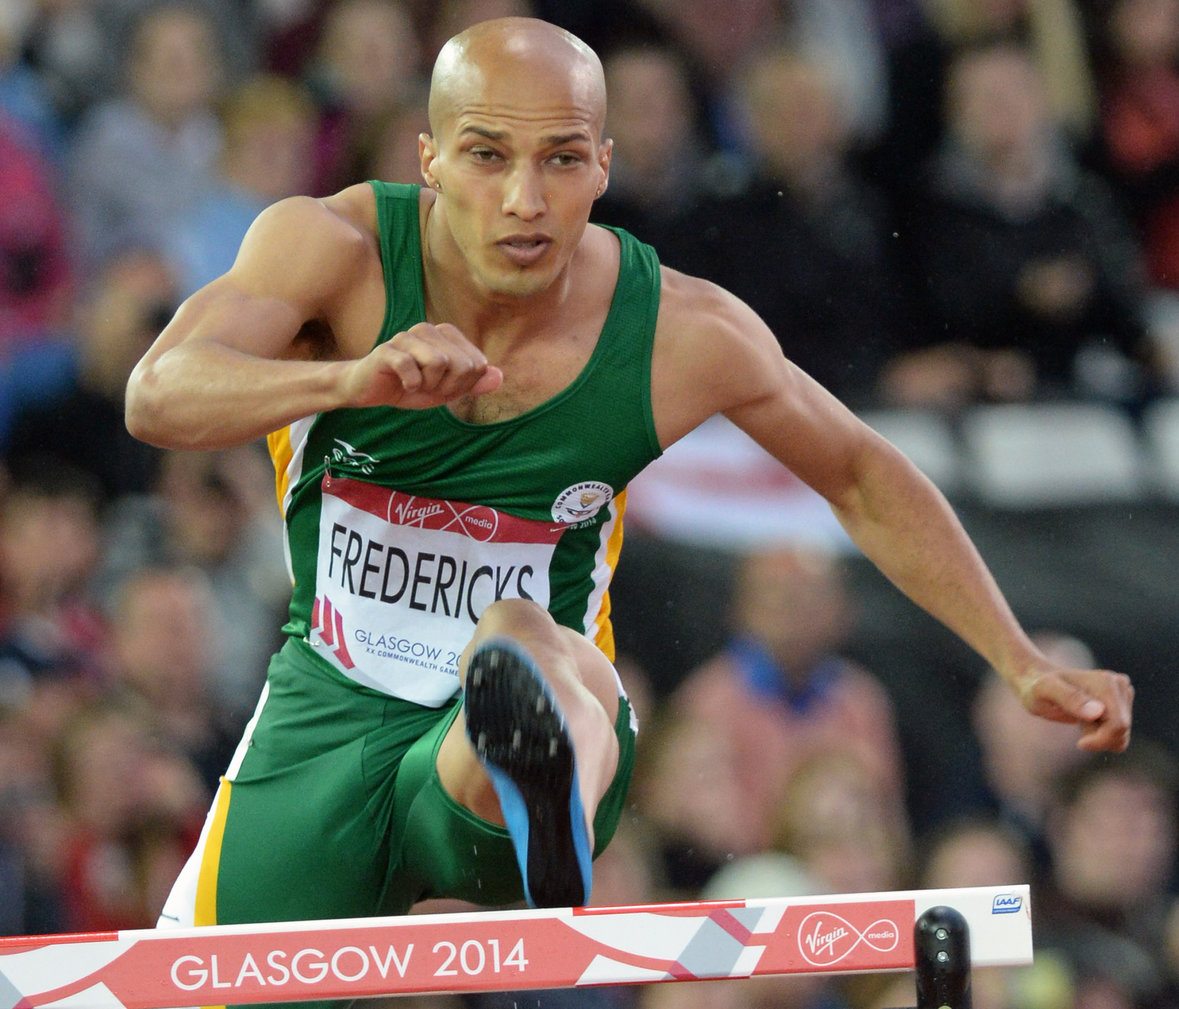 Flying Fredericks helps SA beat 2010 Games tally